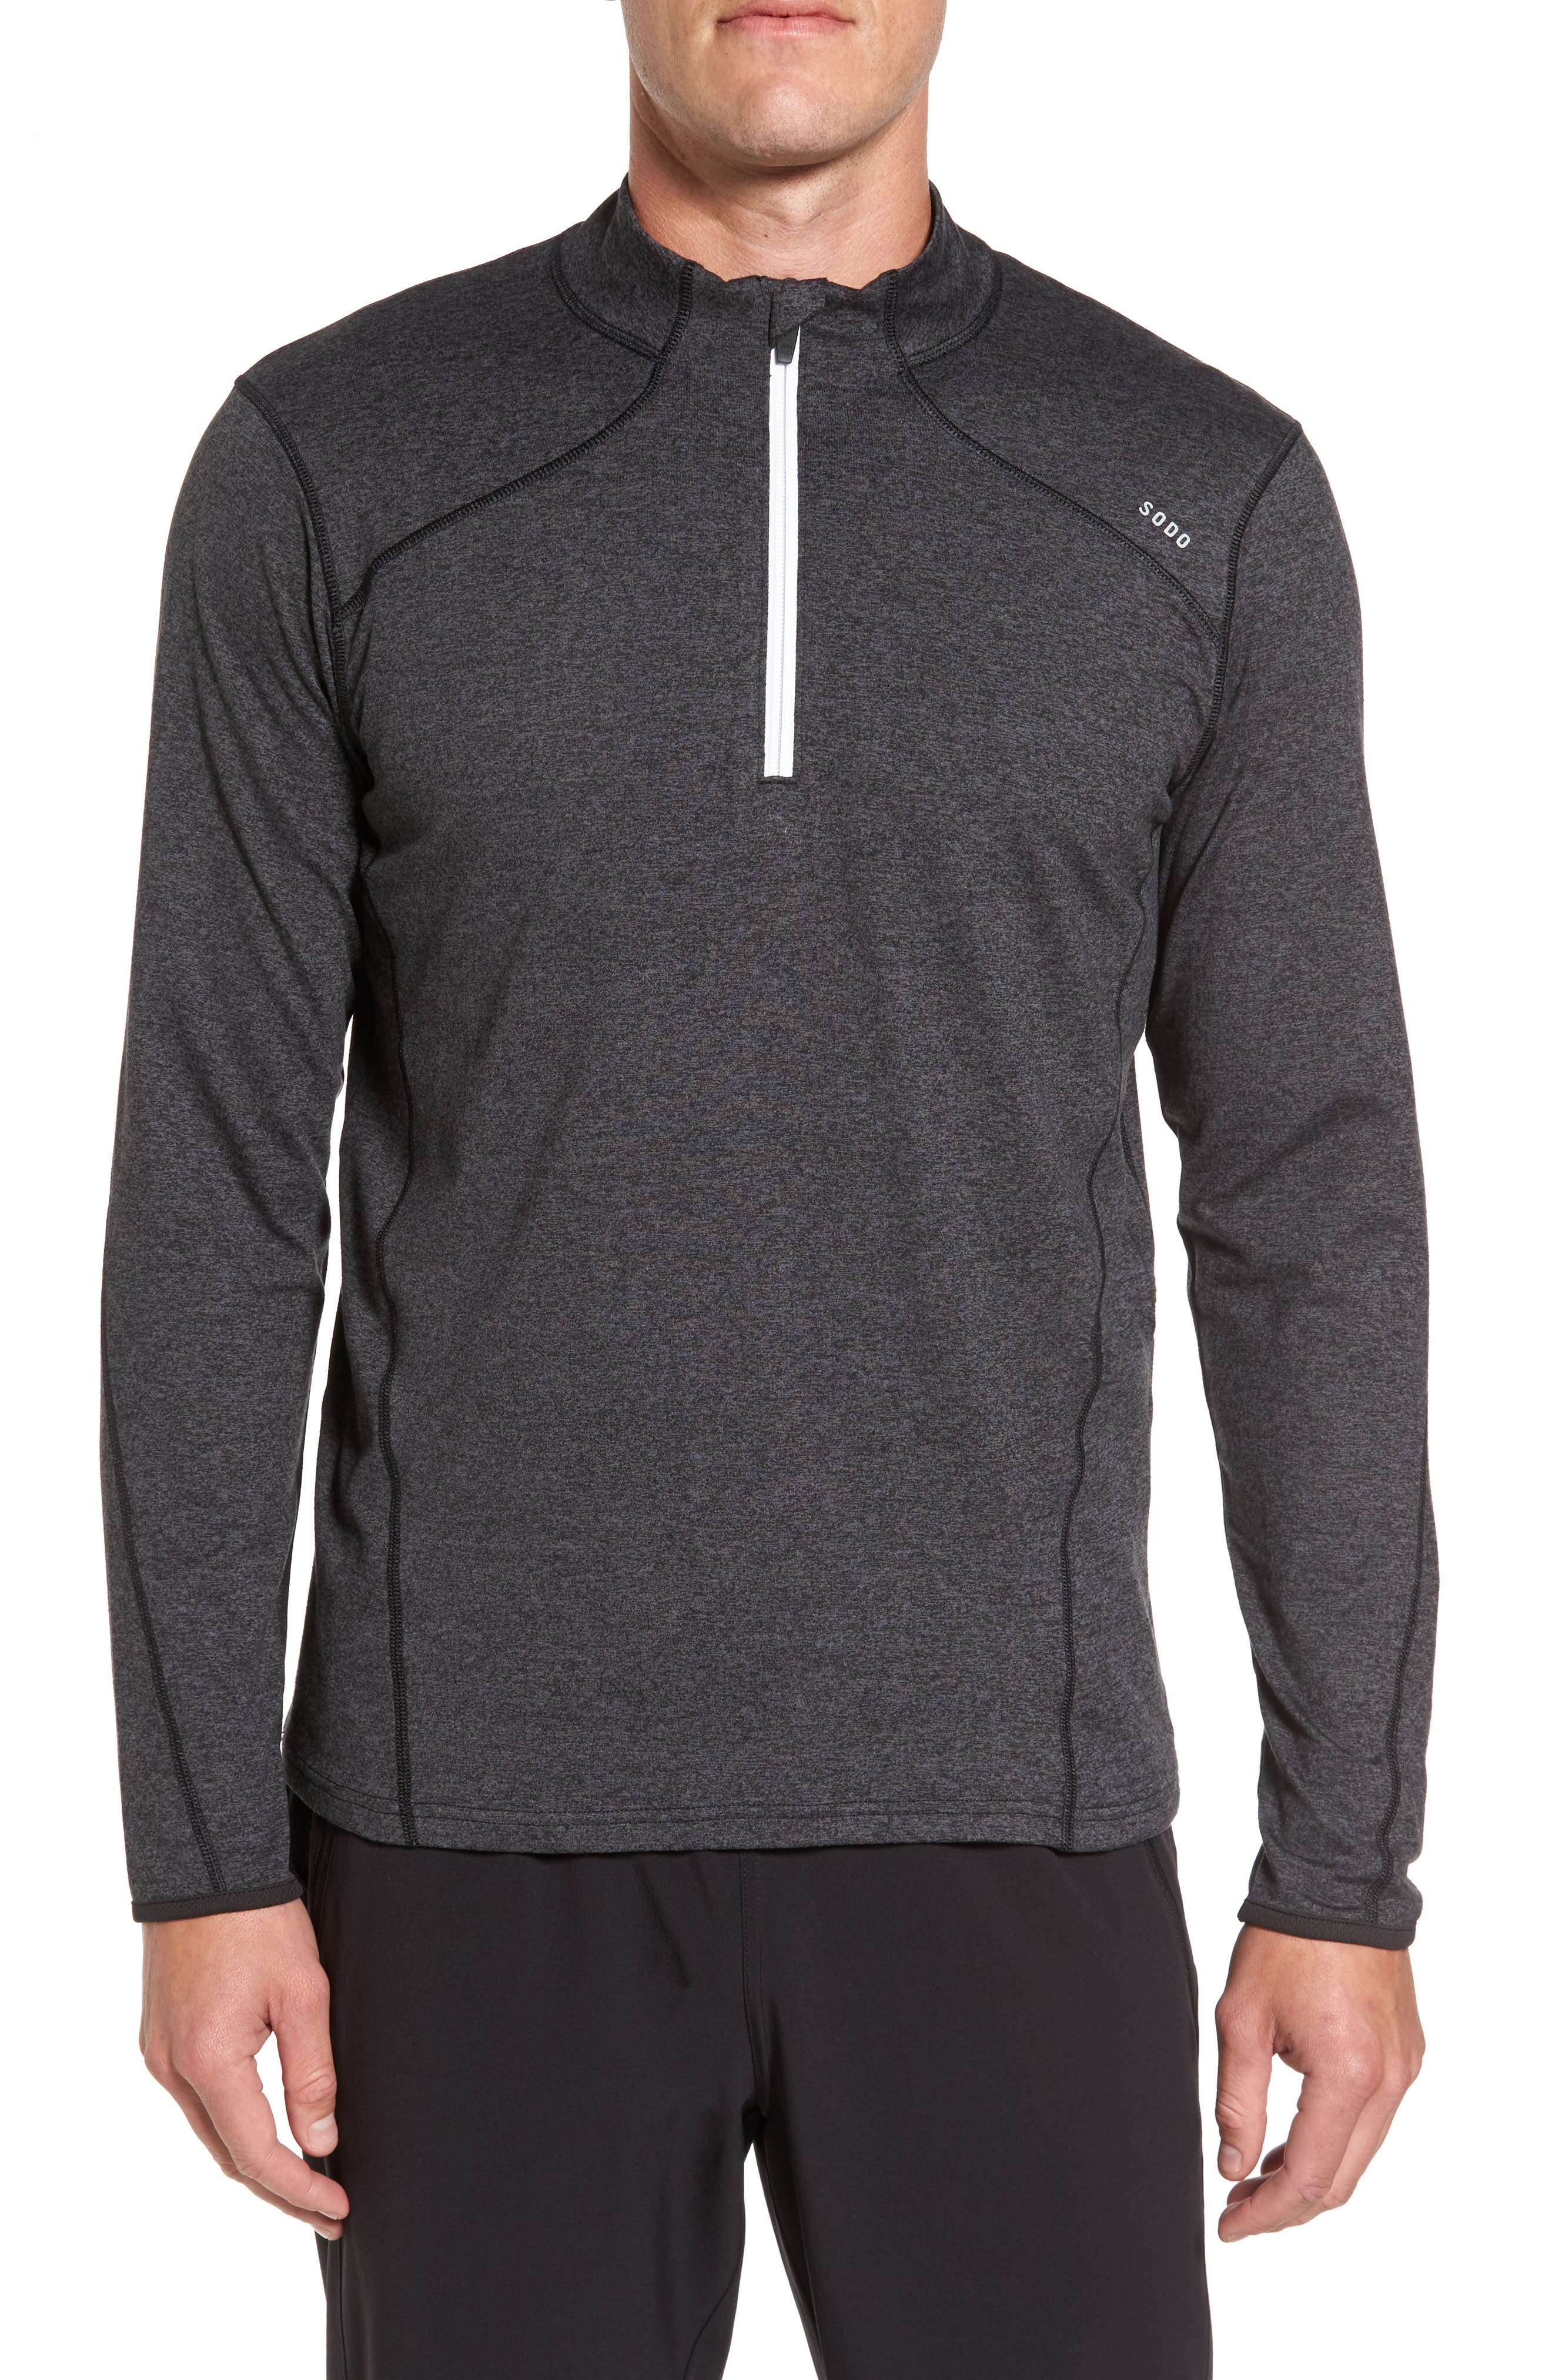 'Elevate' Moisture Wicking Stretch Quarter Zip Pullover,                             Main thumbnail 1, color,                             001